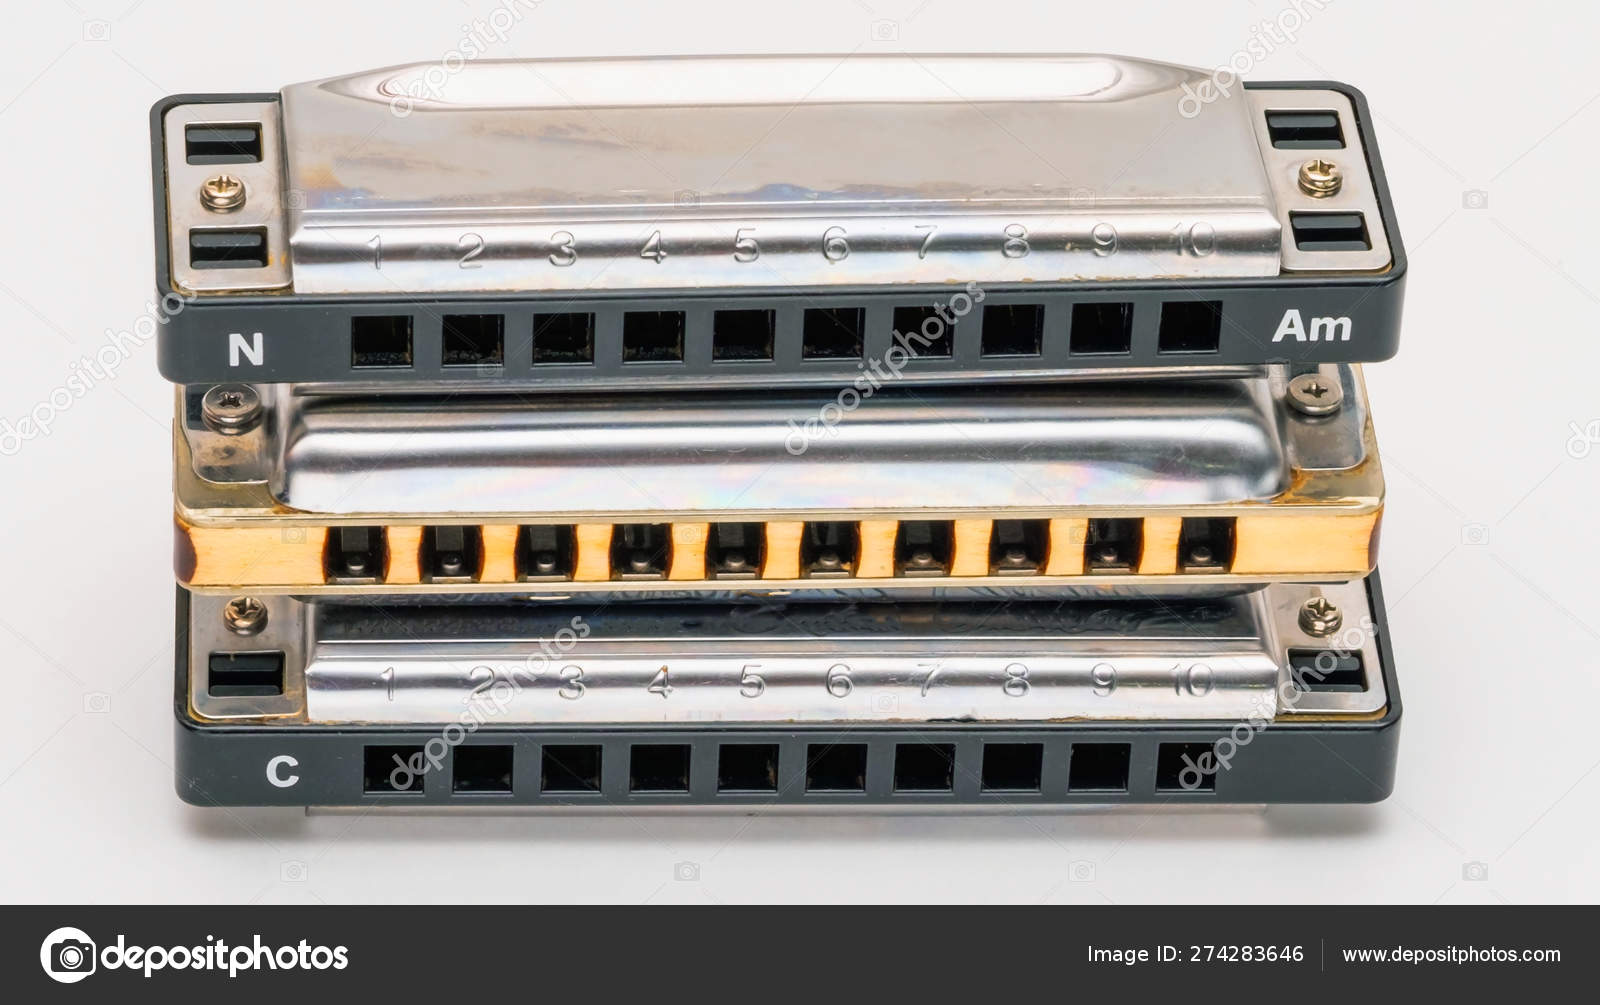 Blues harp classic diatonic harmonica — Stock Photo